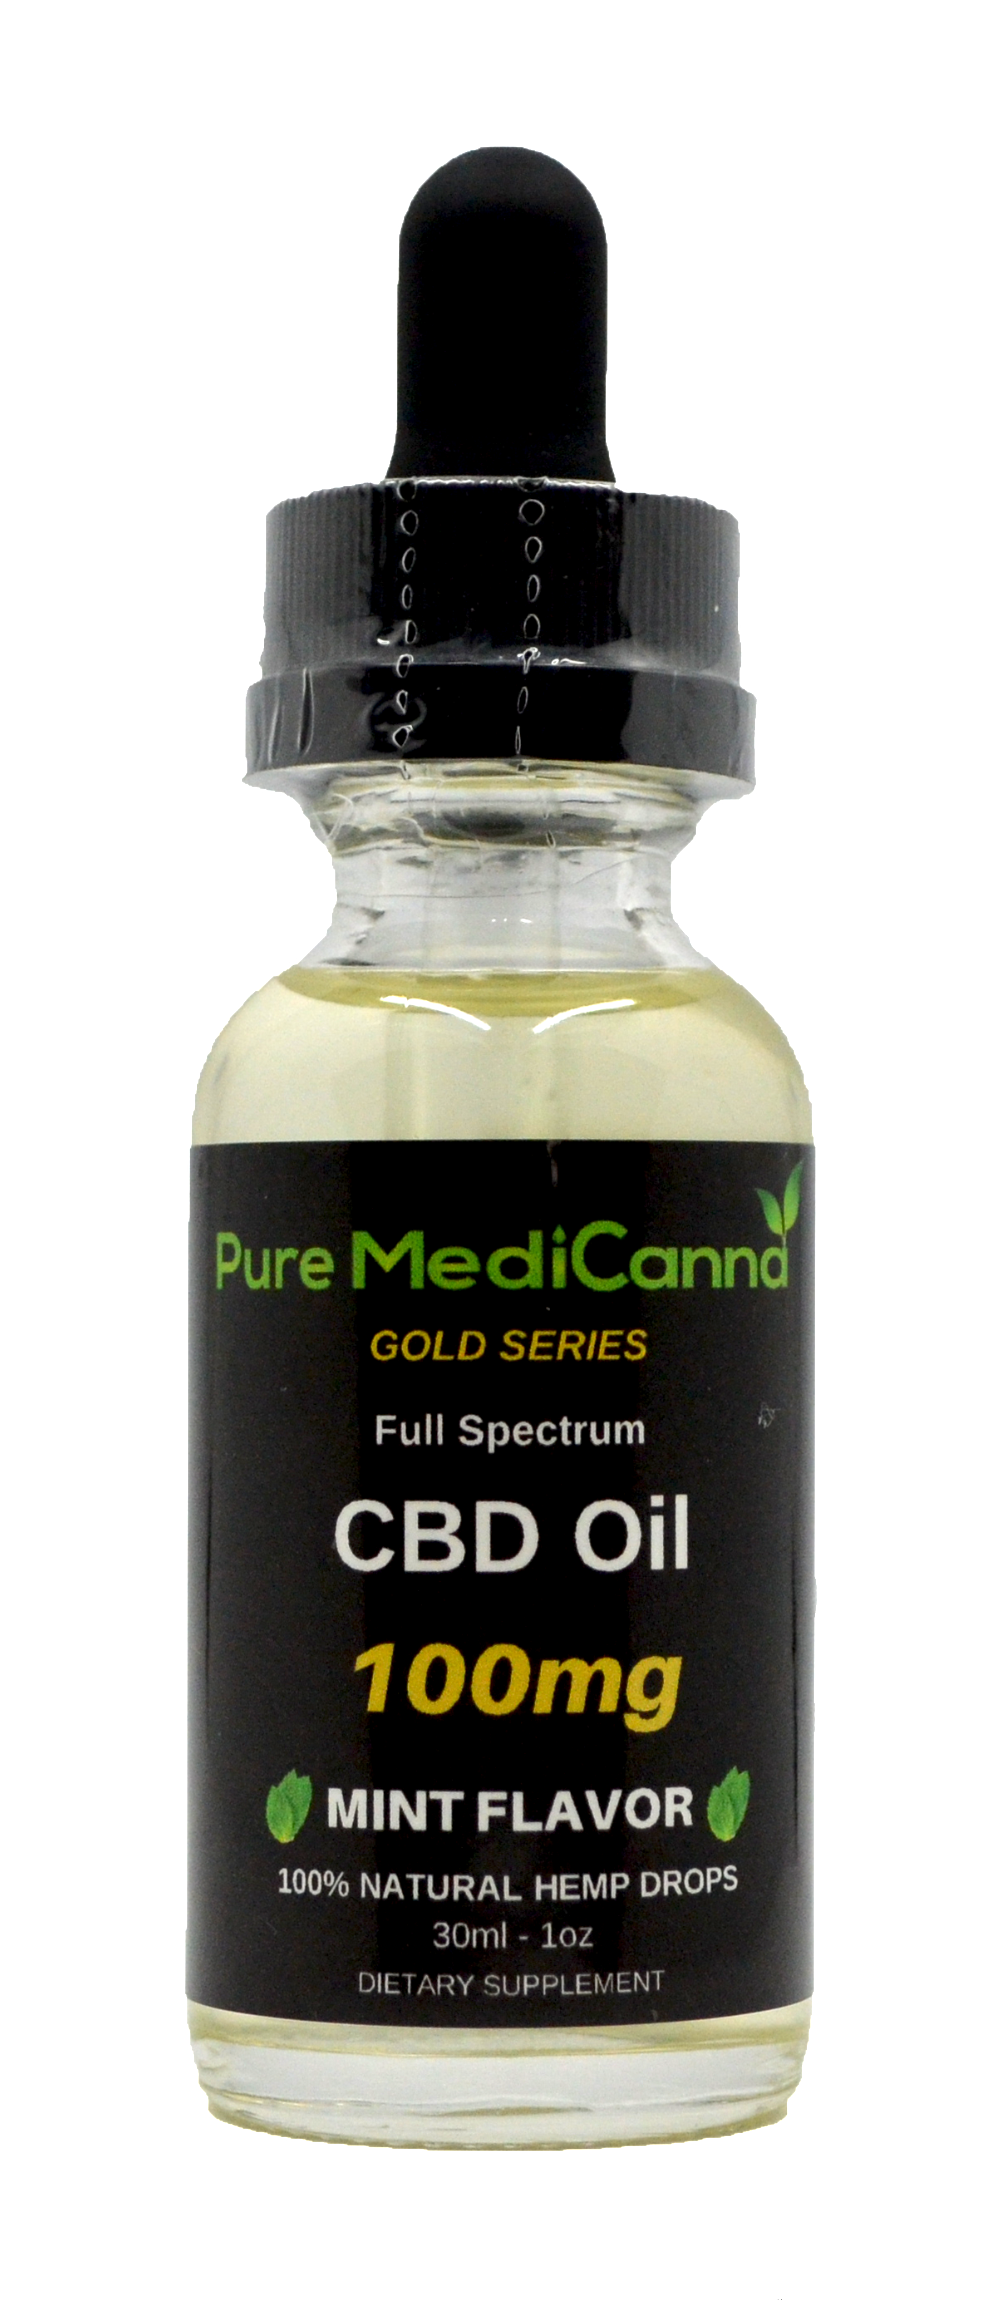 Gold Series Full Spectrum CBD Tincture - 100mg CBD - PMC